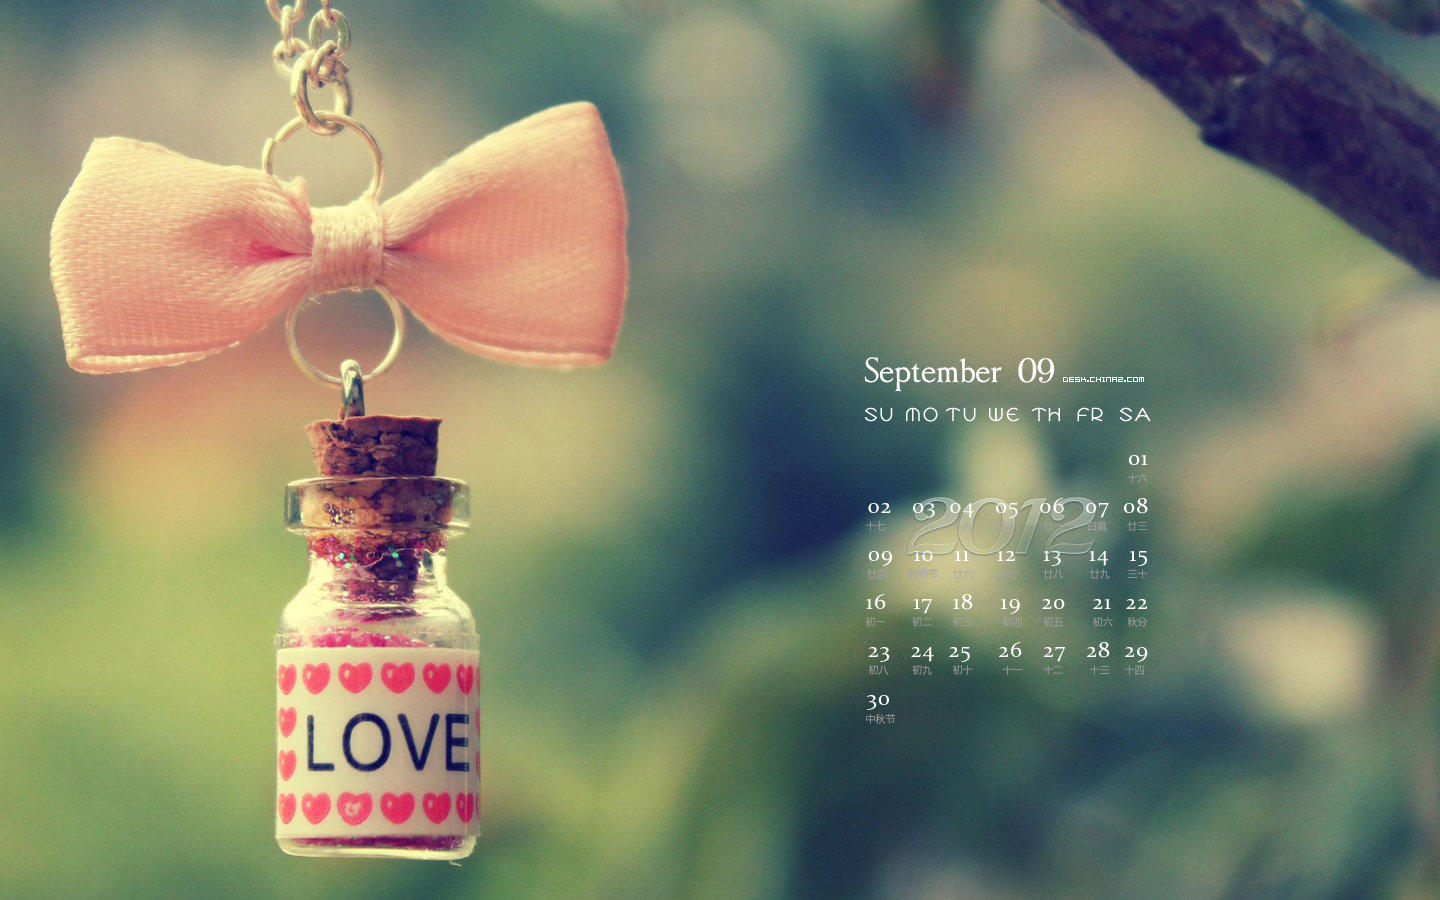 Love Wallpapers For Someone Special : ?????9?????????????????_2012?9????????-???????? ?? ?? ??